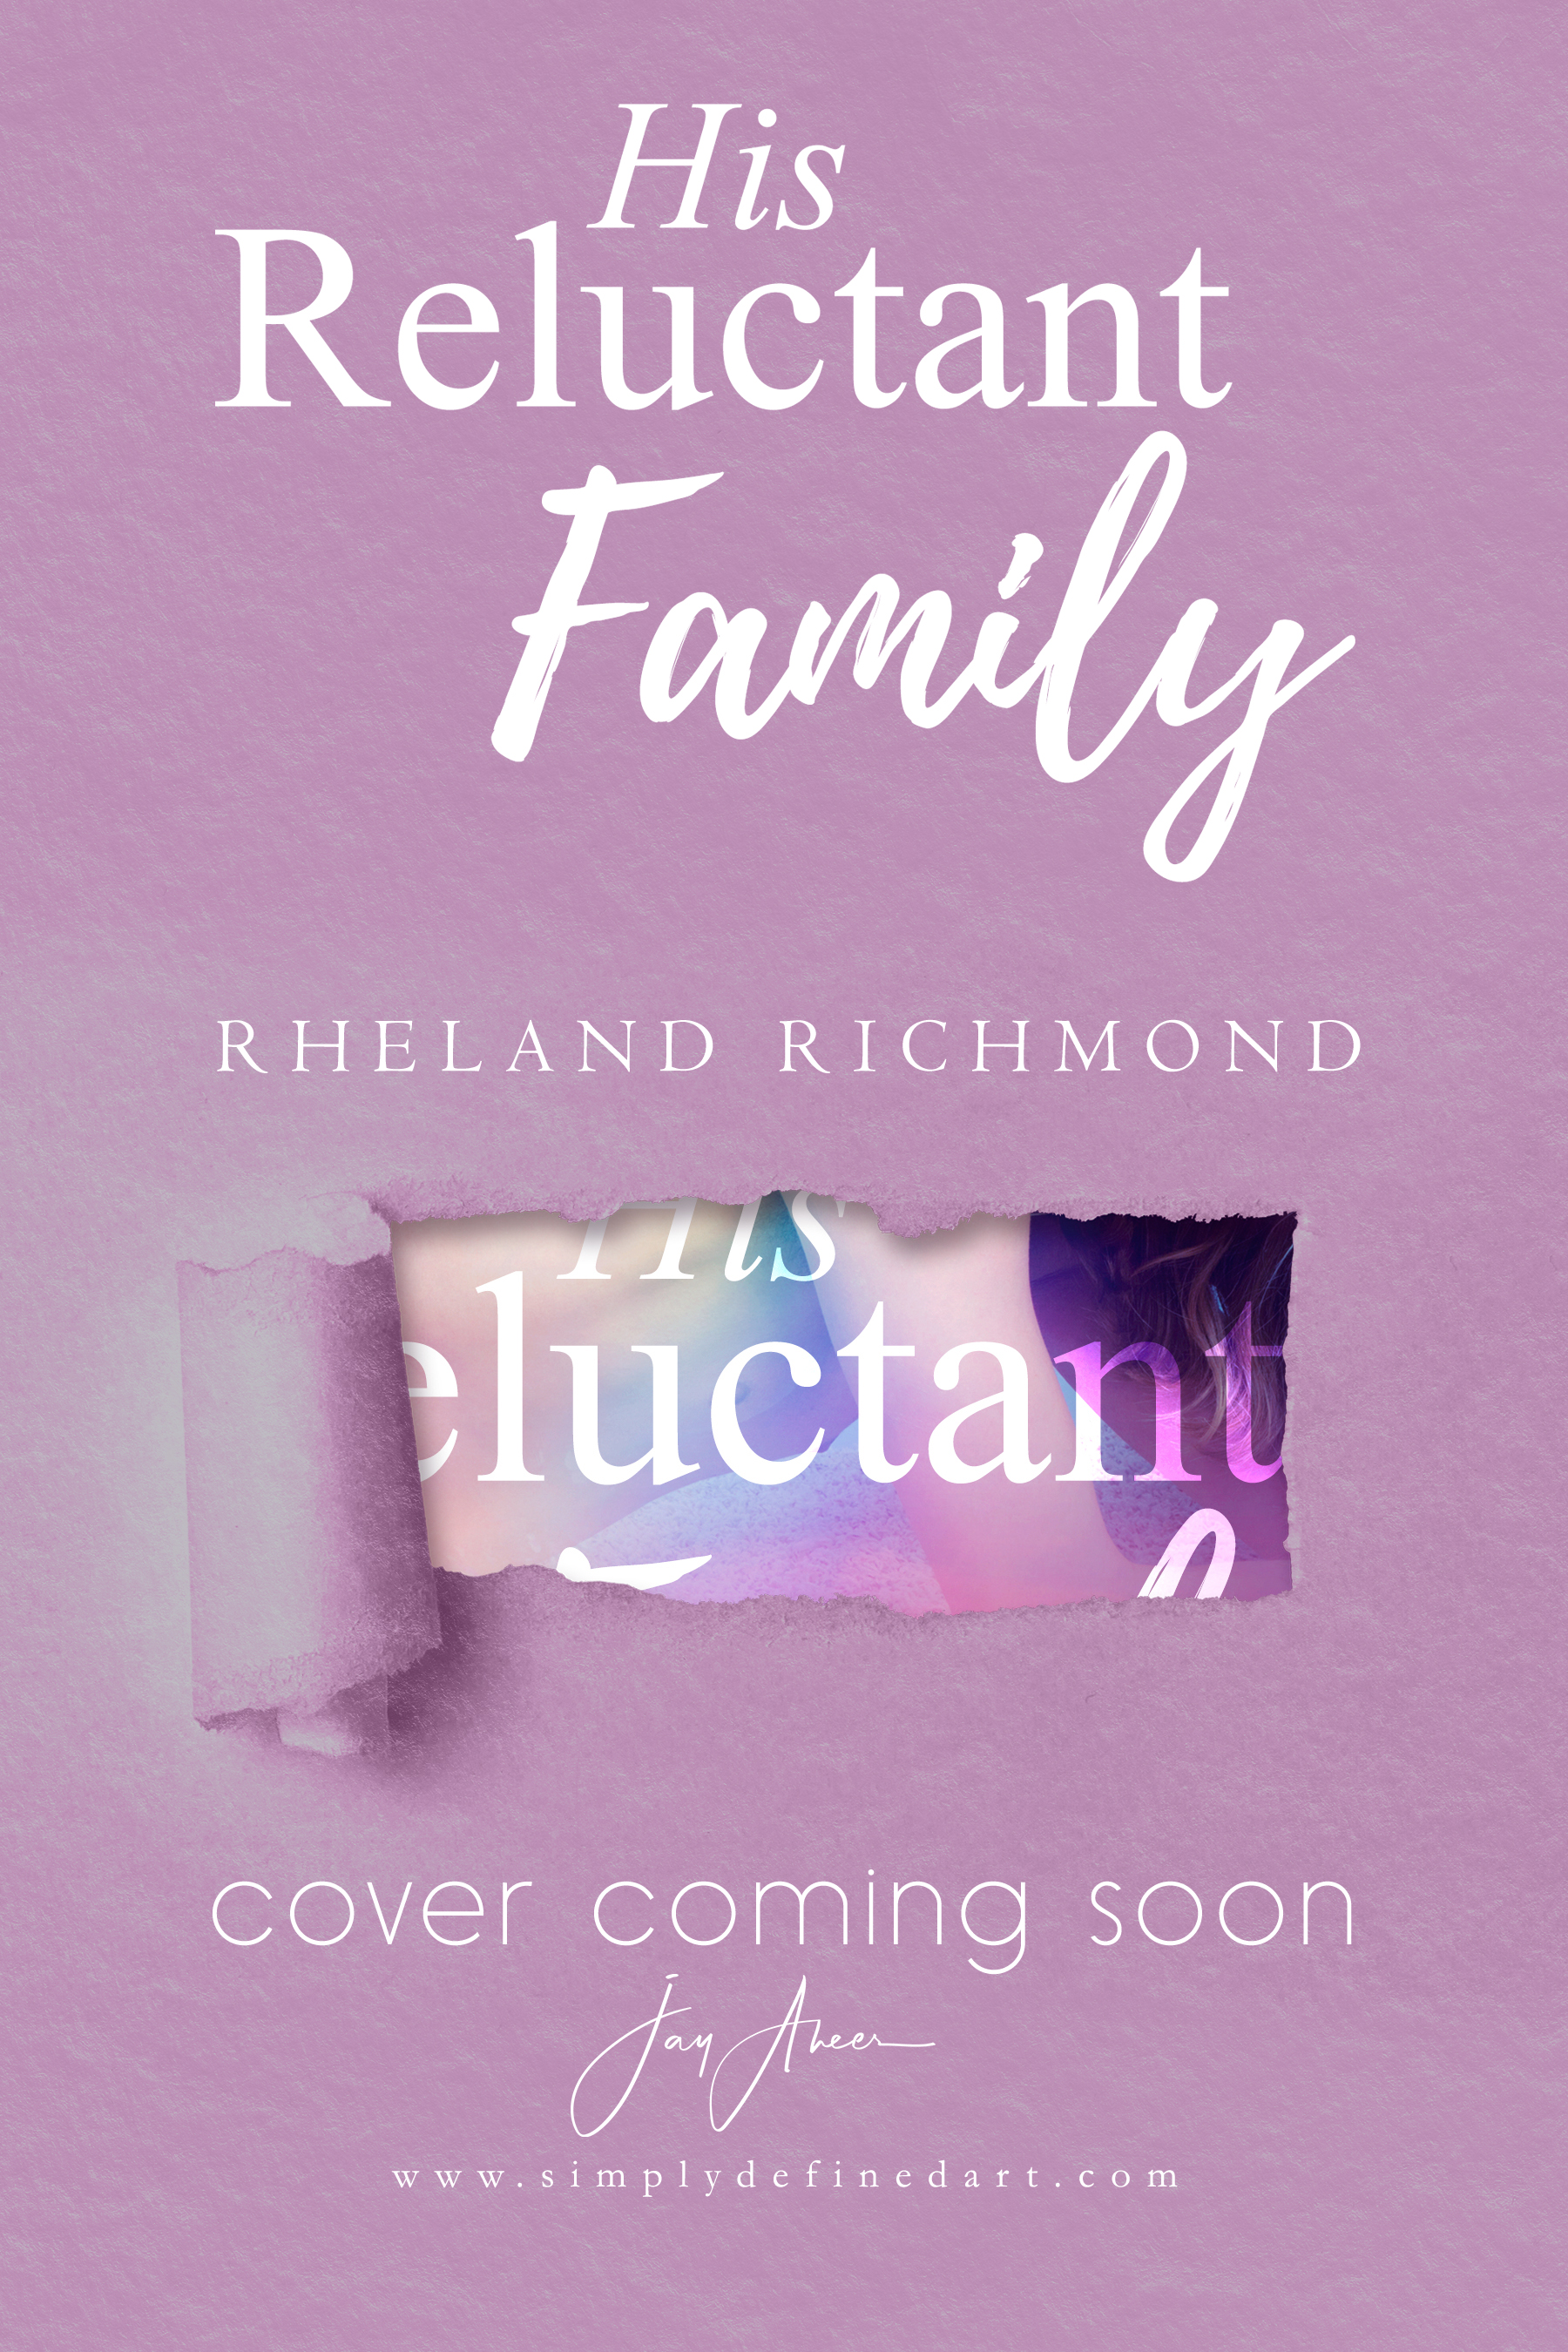 His Reluctant family-comingsoon.jpg